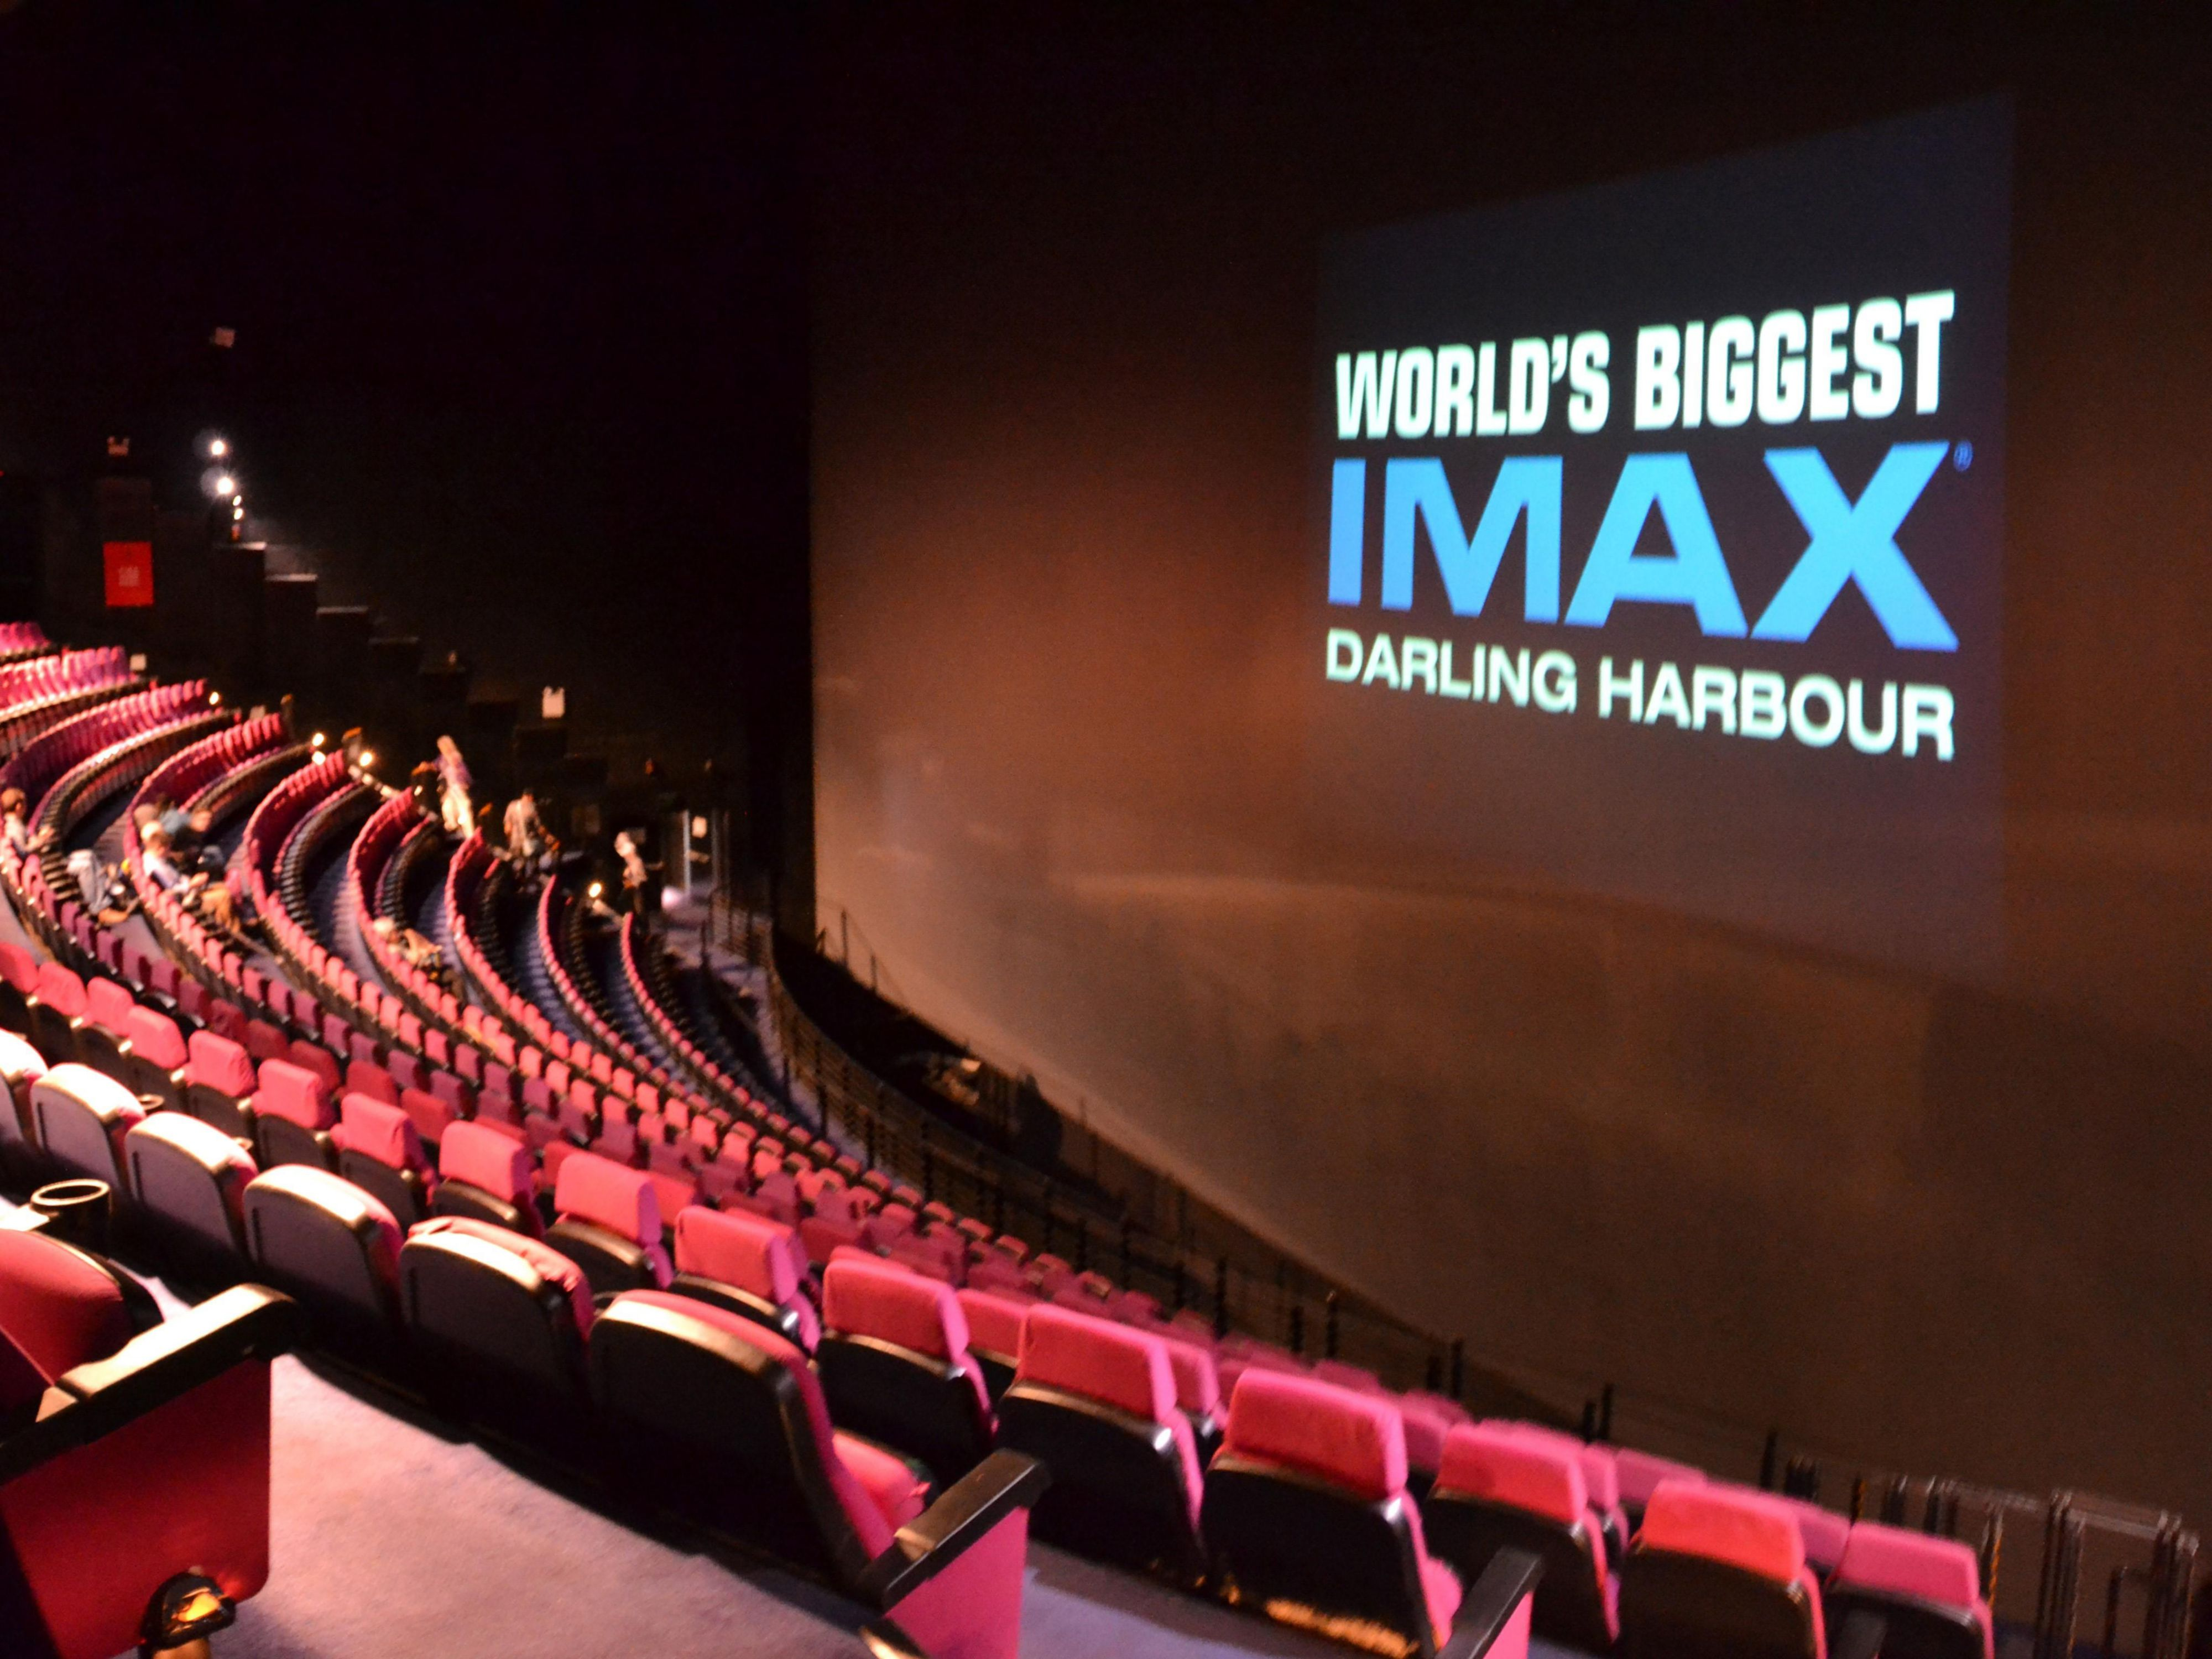 IMAX Theatre Darling Harbour